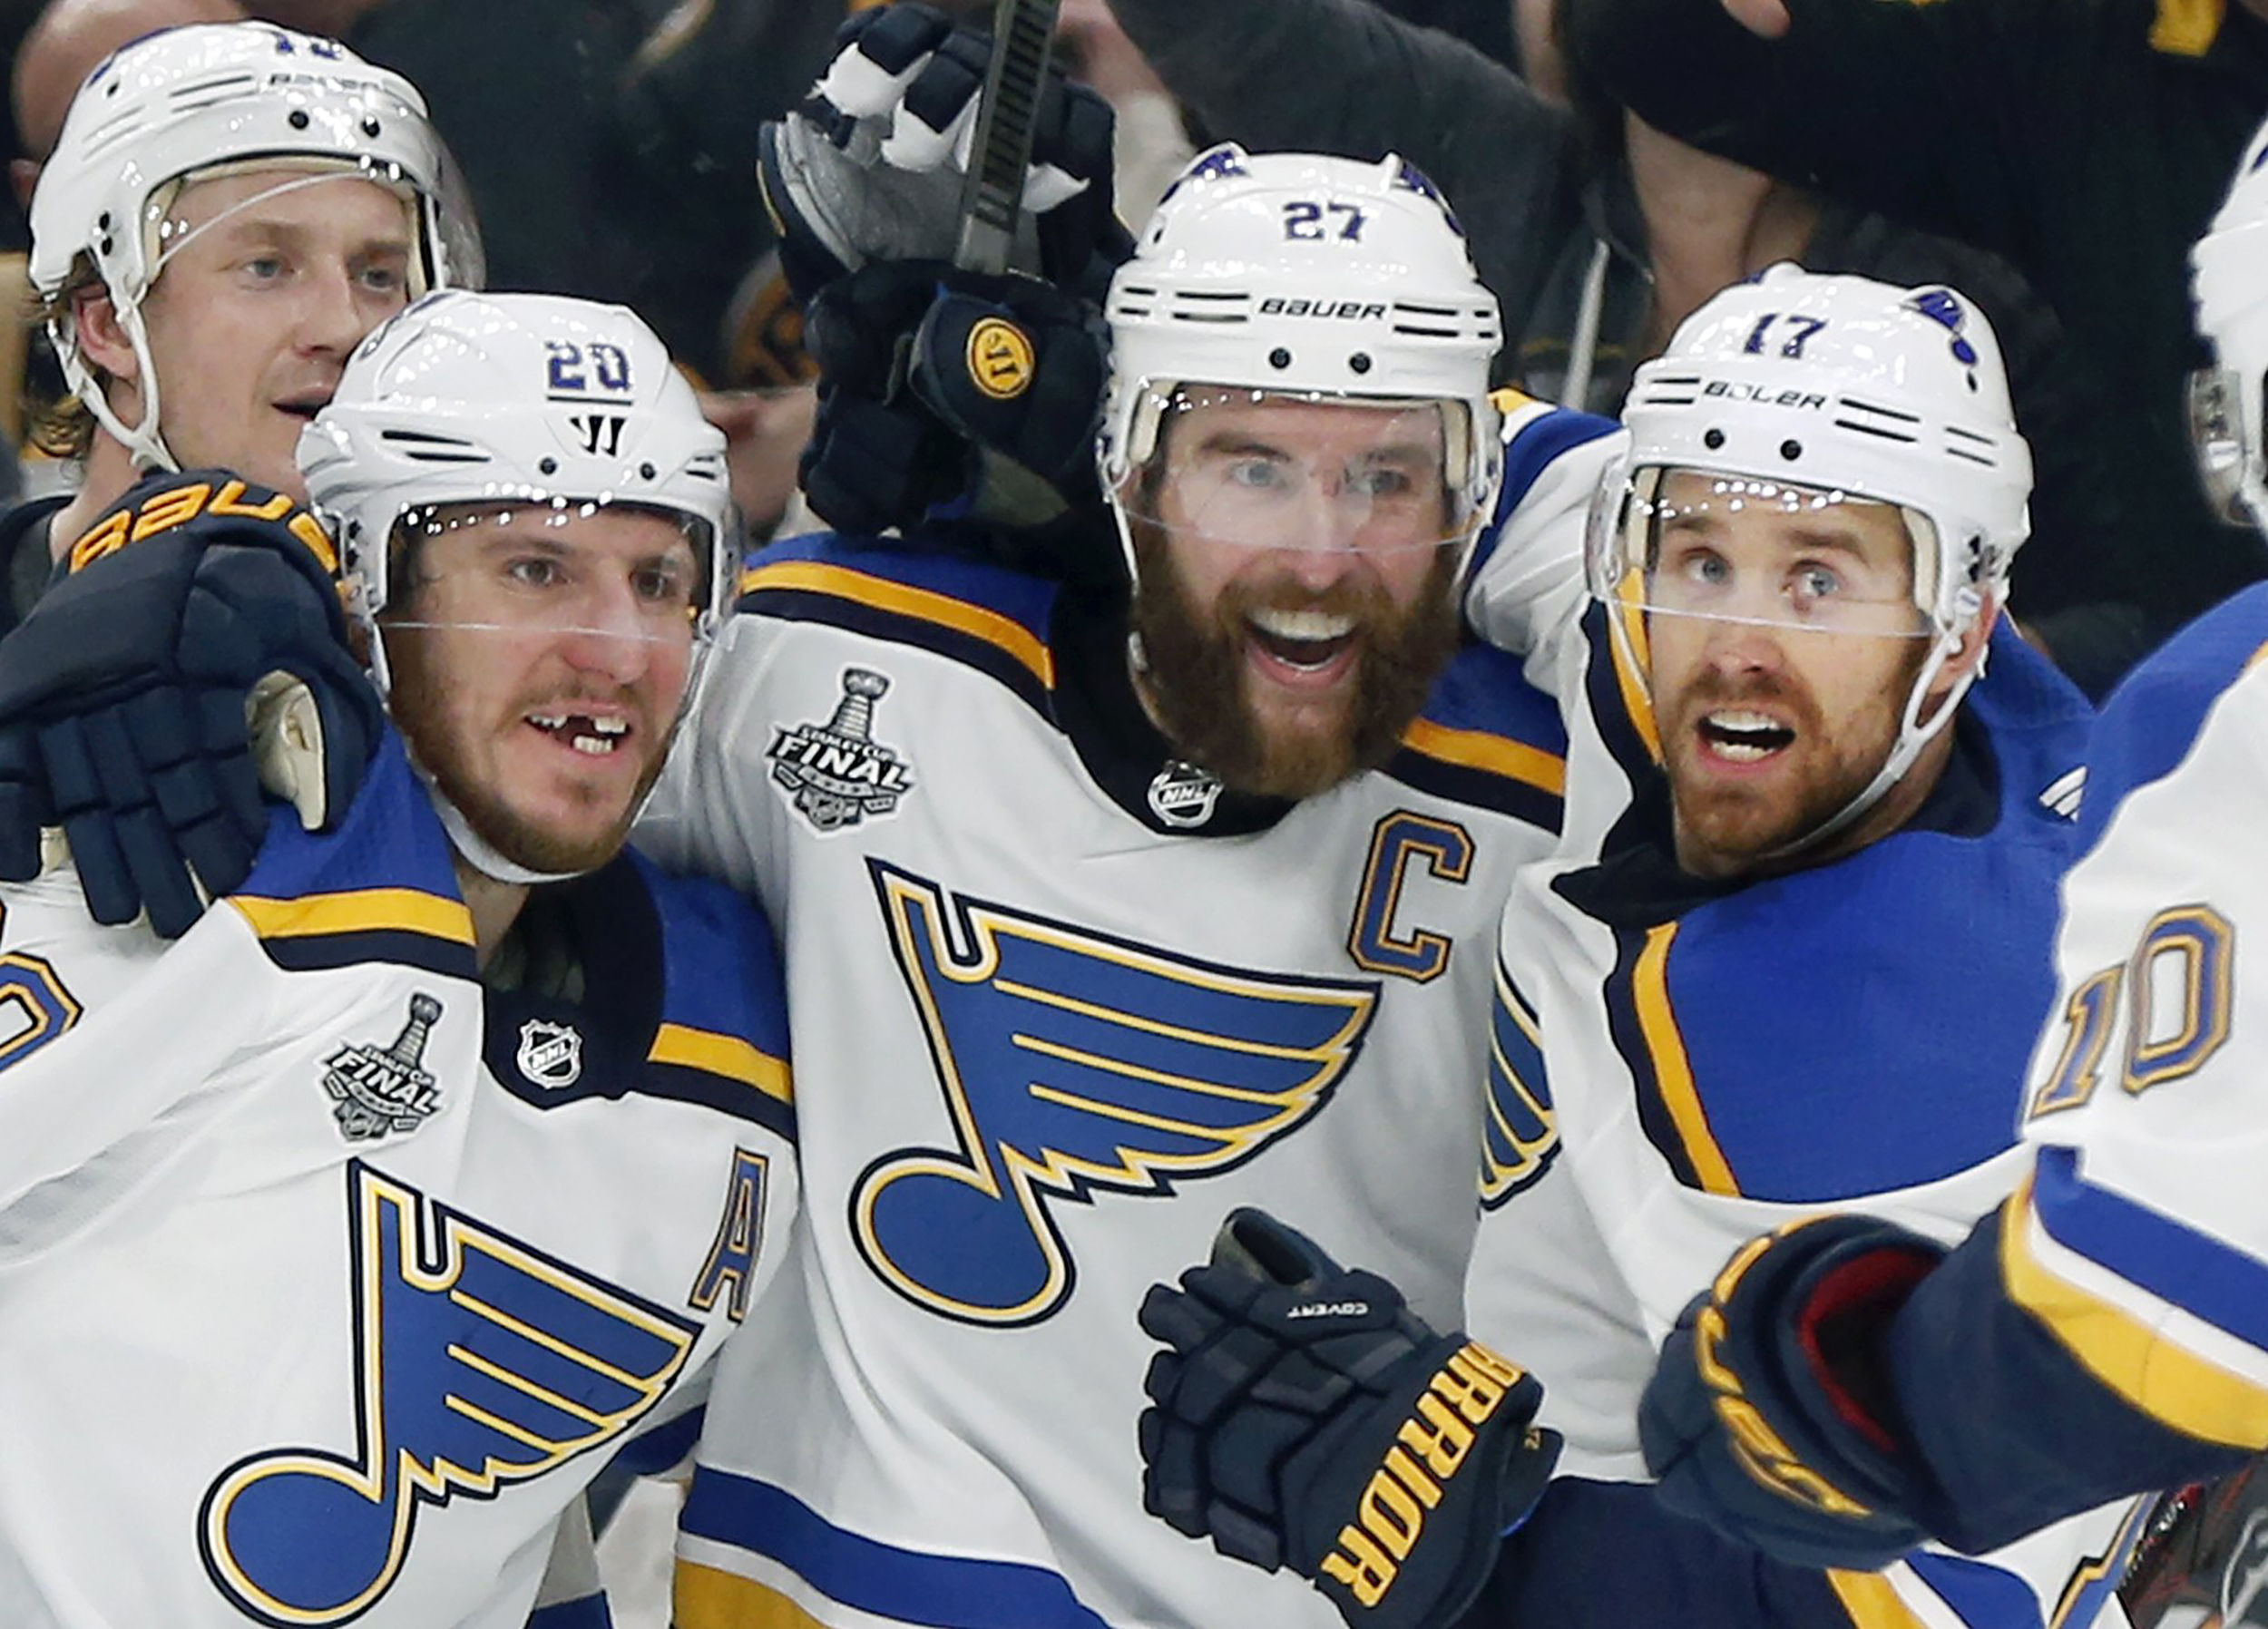 St.-Louis-Blues-beat-Boston-Bruins,-4-1,-for-first-Stanley-Cup